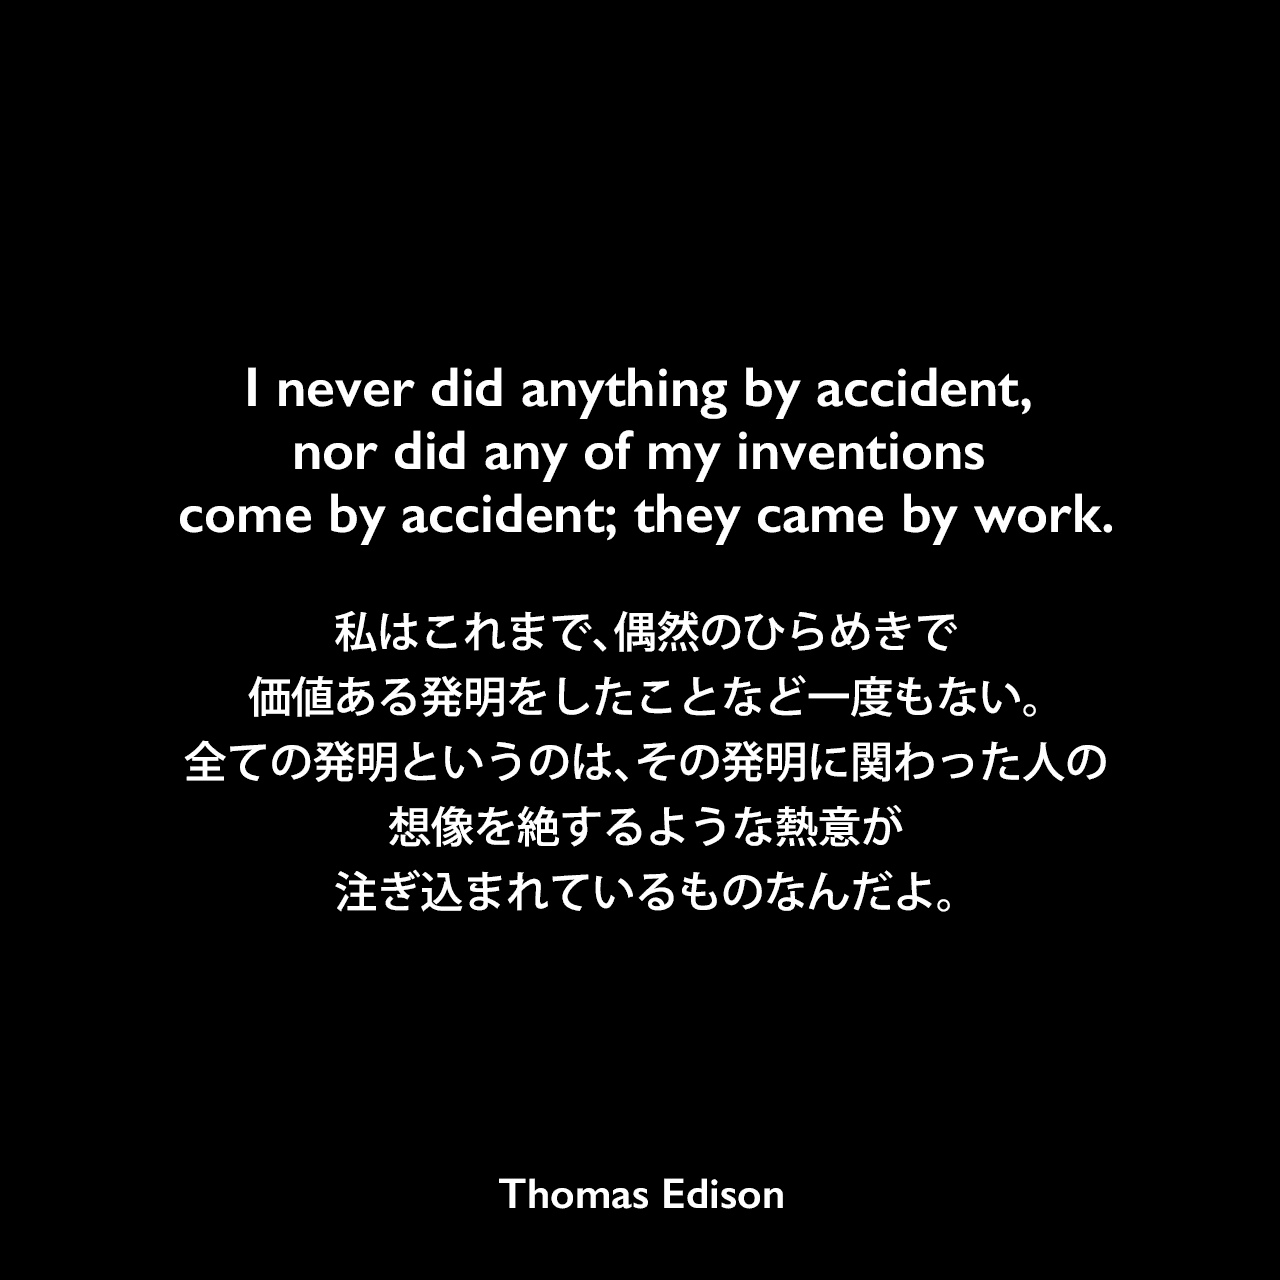 I never did anything by accident, nor did any of my inventions come by accident; they came by work.私はこれまで、偶然のひらめきで、価値ある発明をしたことなど一度もない。全ての発明というのは、その発明に関わった人の想像を絶するような熱意が注ぎ込まれているものなんだよ。Thomas Edison